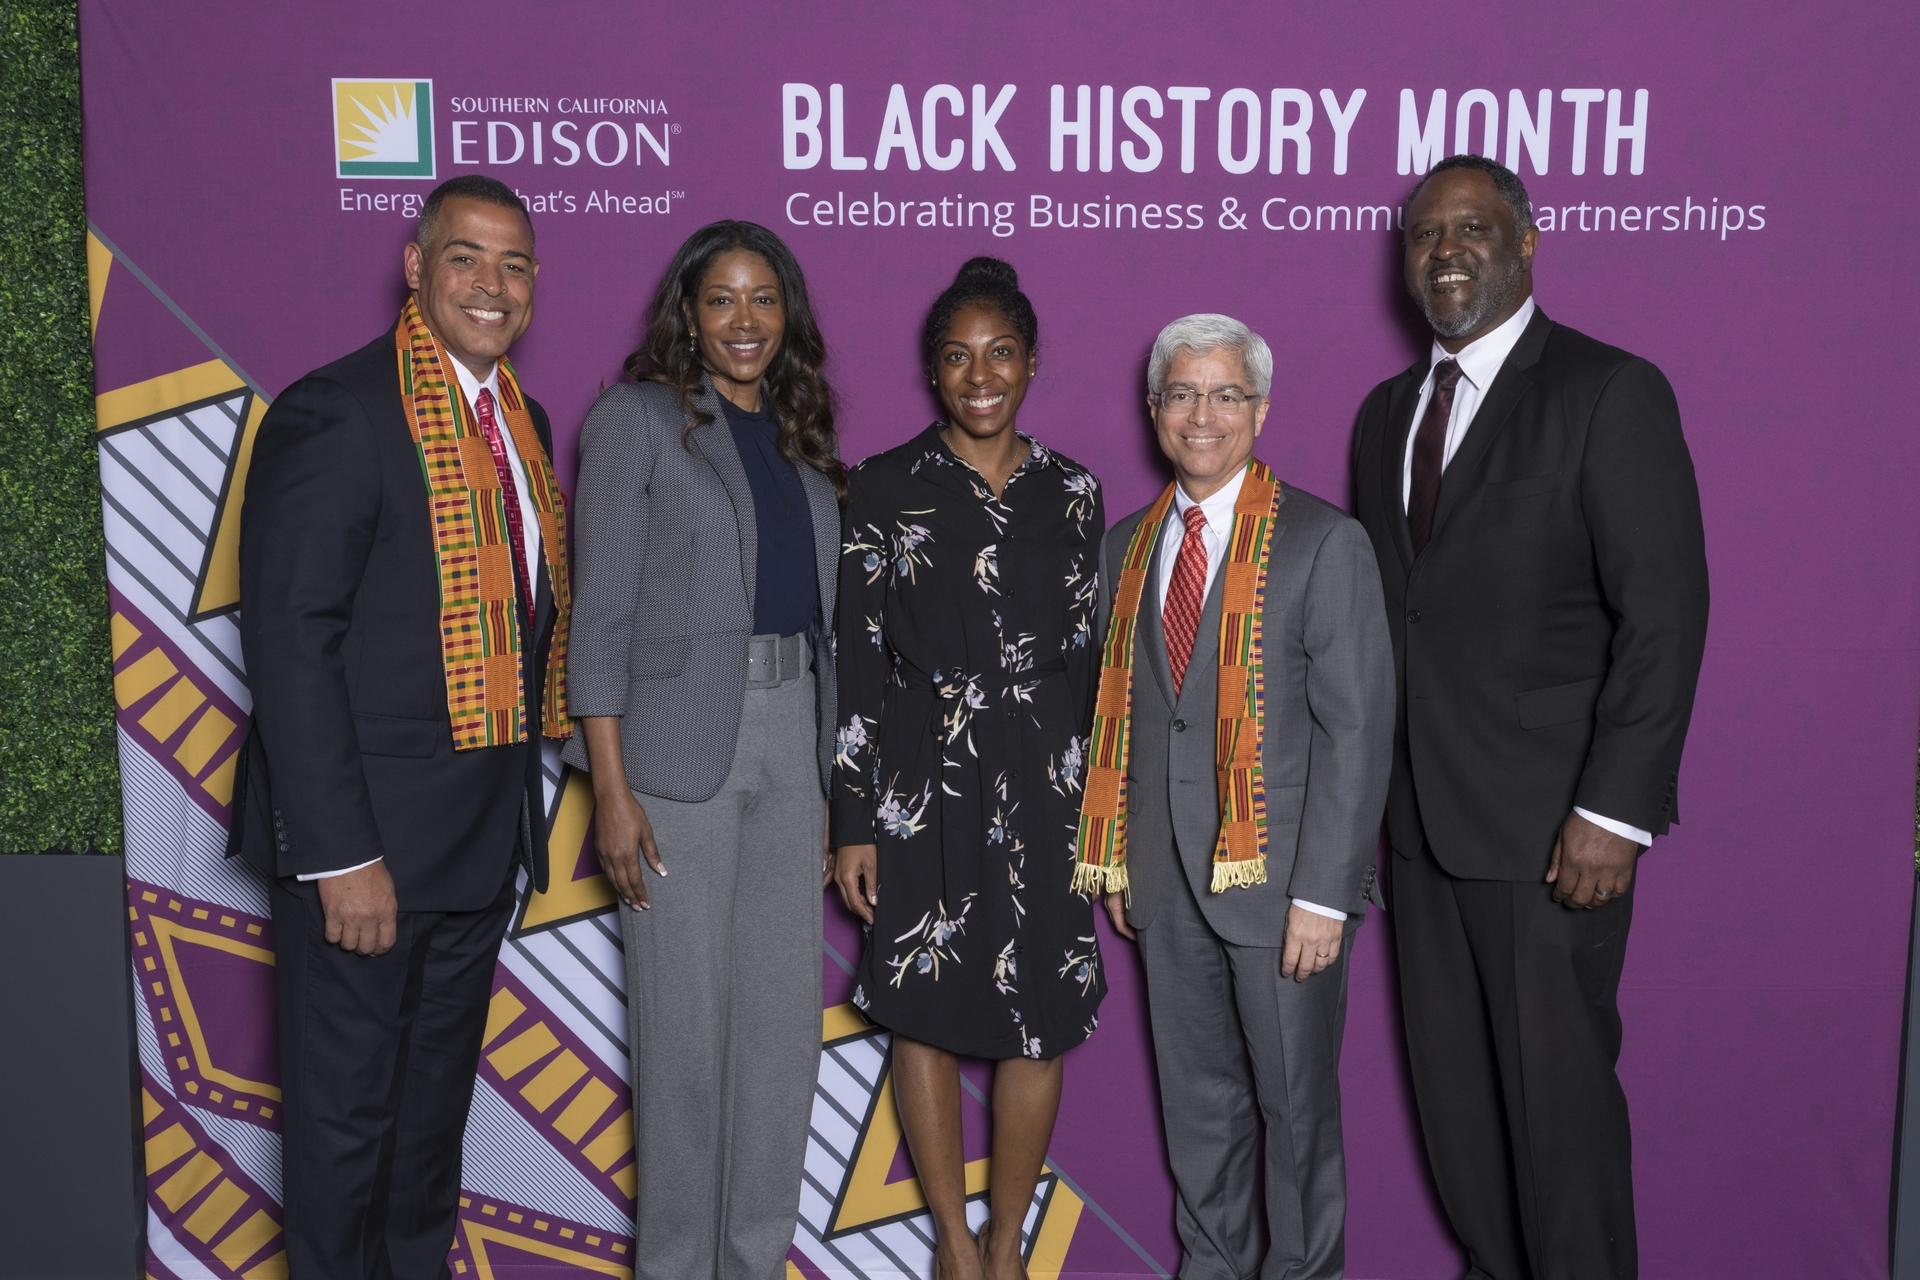 Pictured (l-r): Chris Schauble KTLA5 anchor and emcee; Glory Dolphin Hammes, CEO of IQAir North America, Inc.; Shanita Nicholas, attorney and co-founder of Sip & Sonder; Pedro Pizarro, president and CEO of Edison International; and Robert Lewis, president and board chair of the Black Cooperative Investment Fund.